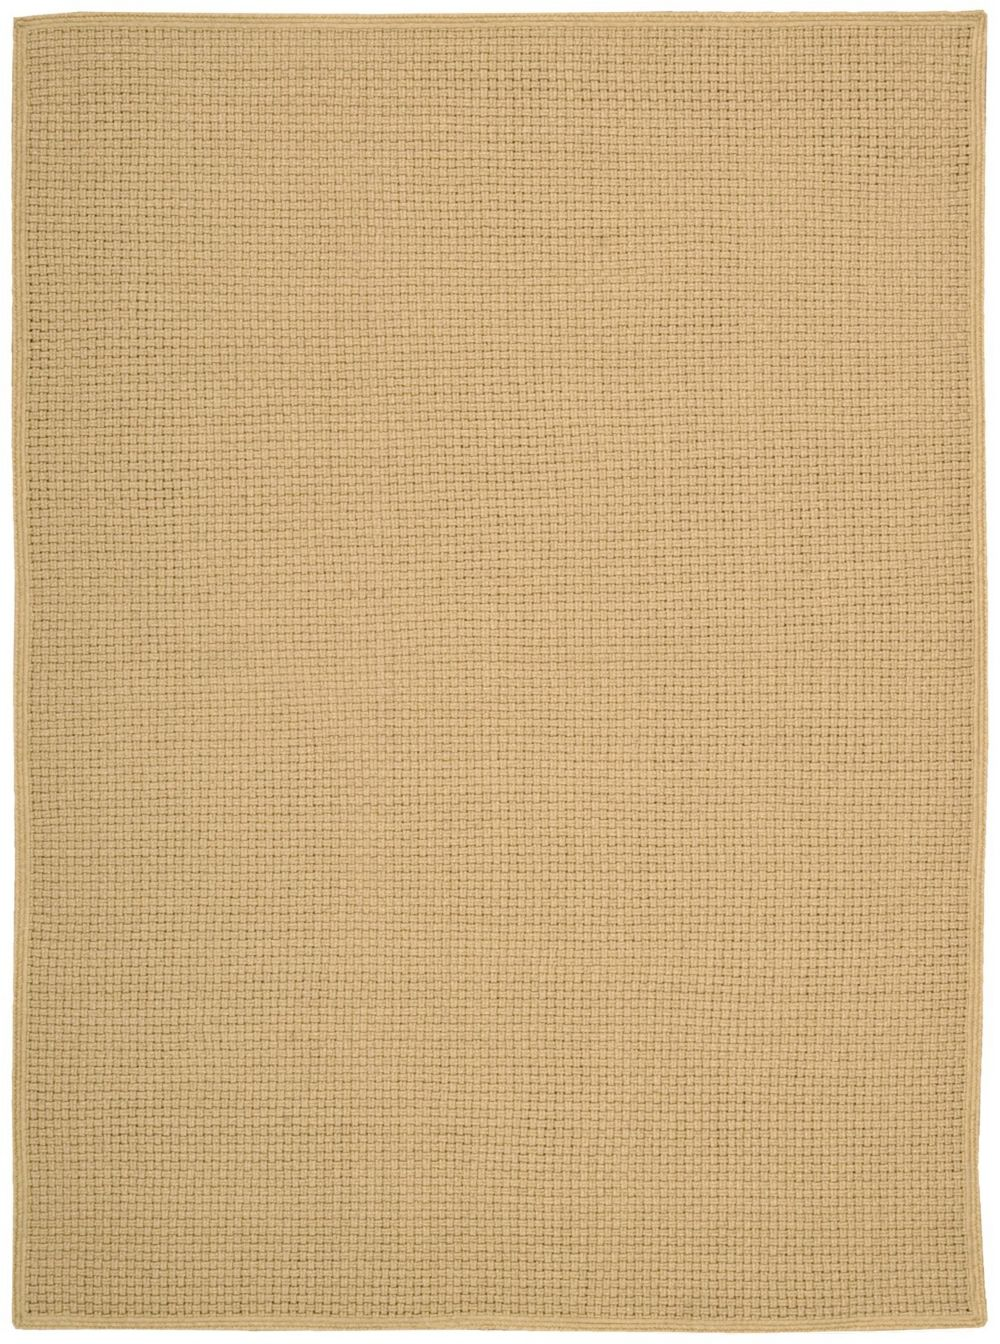 calvin klein ck28 - shetland contemporary area rug collection